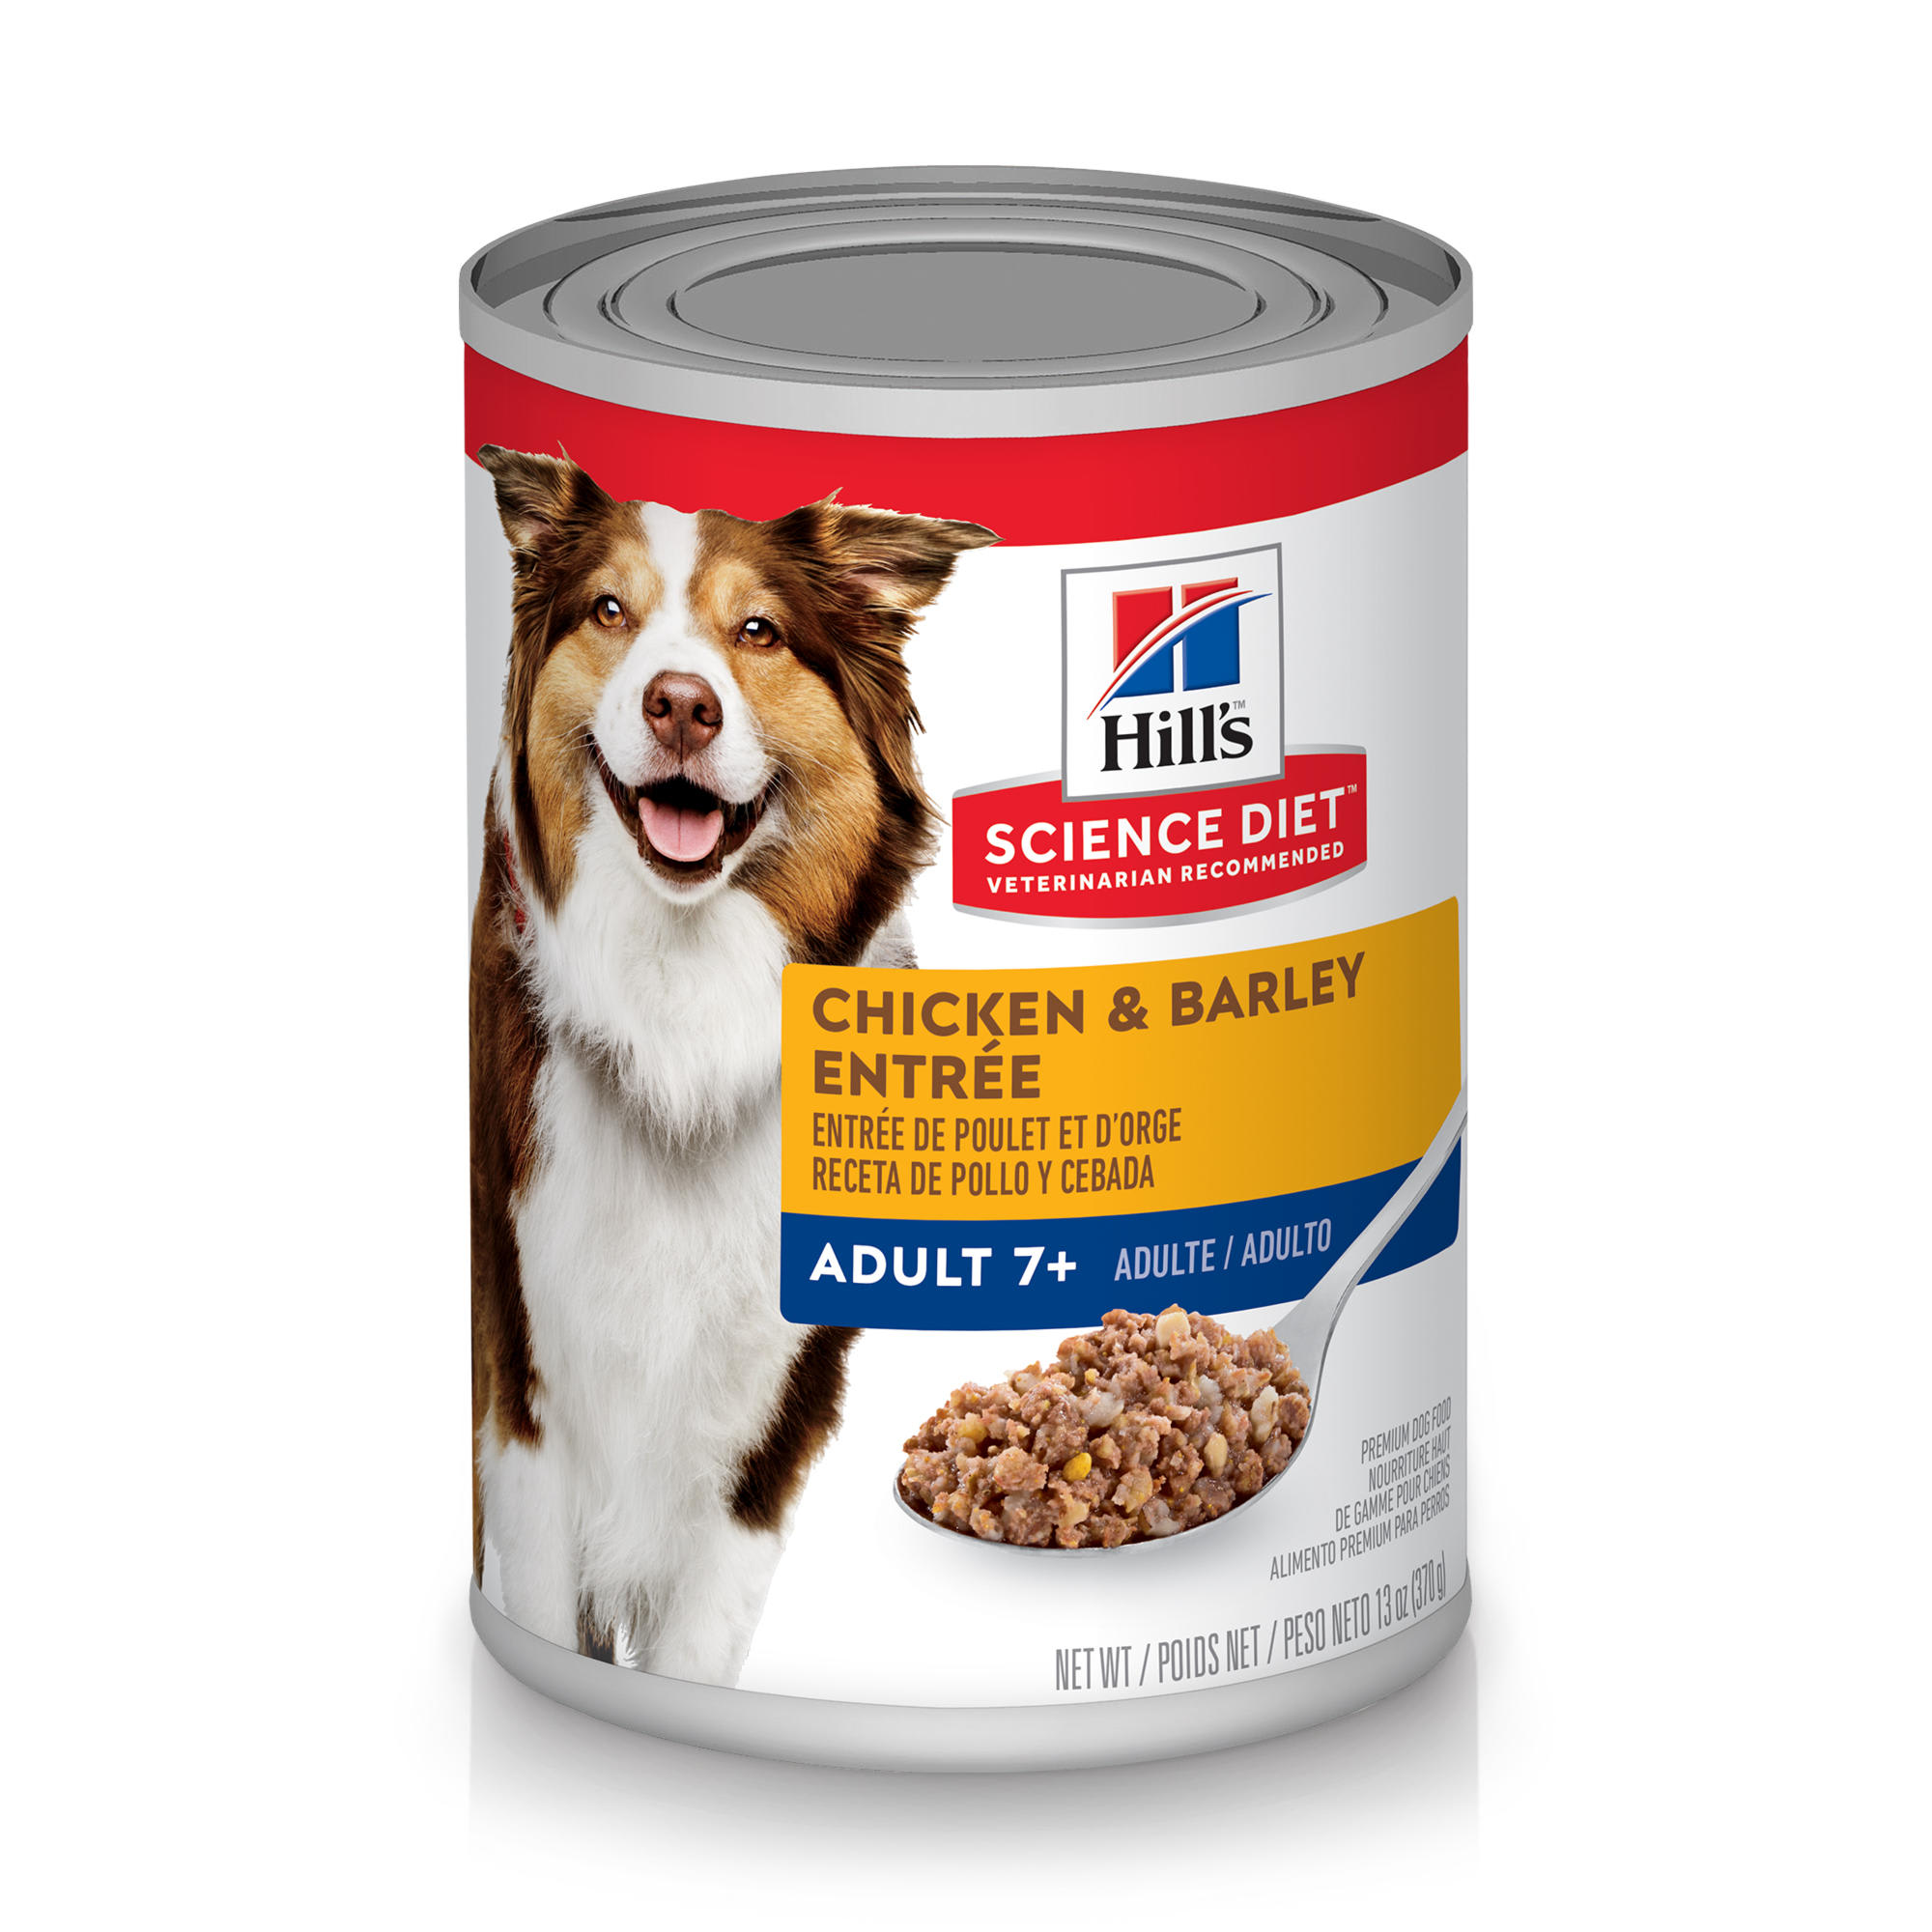 Hill's Science Diet Adult 7+ Chicken & Barley Entree Canned Dog Food -  P5055742